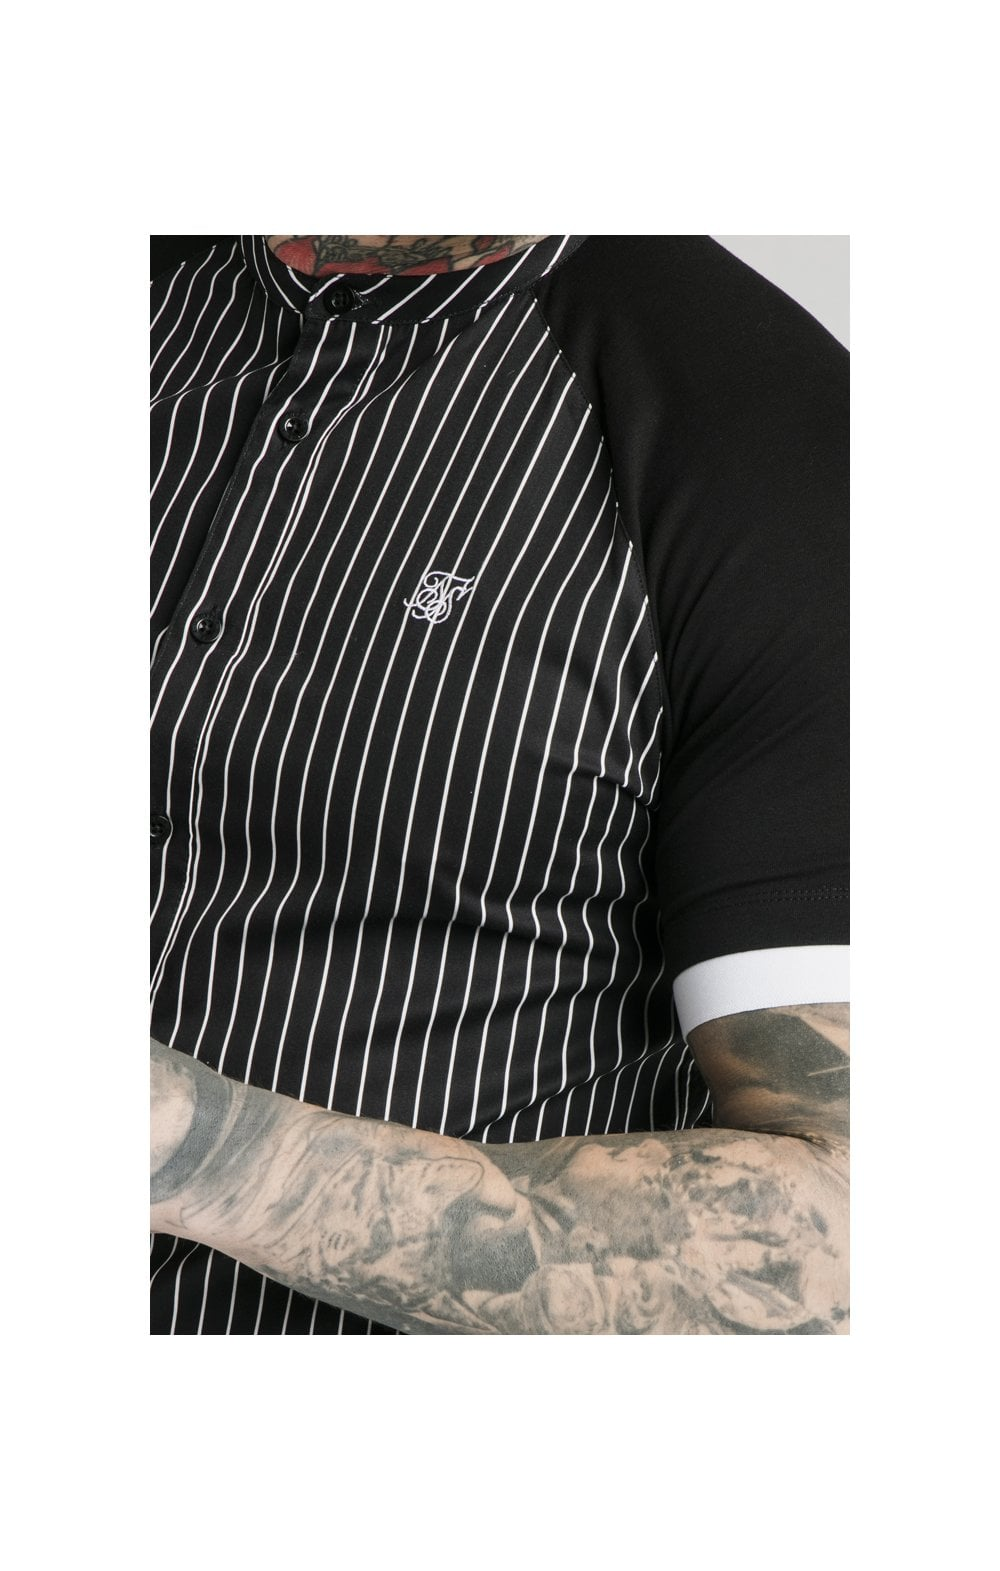 Load image into Gallery viewer, SikSilk S/S Raglan Inset Cuff  Shirt - Black & White (1)